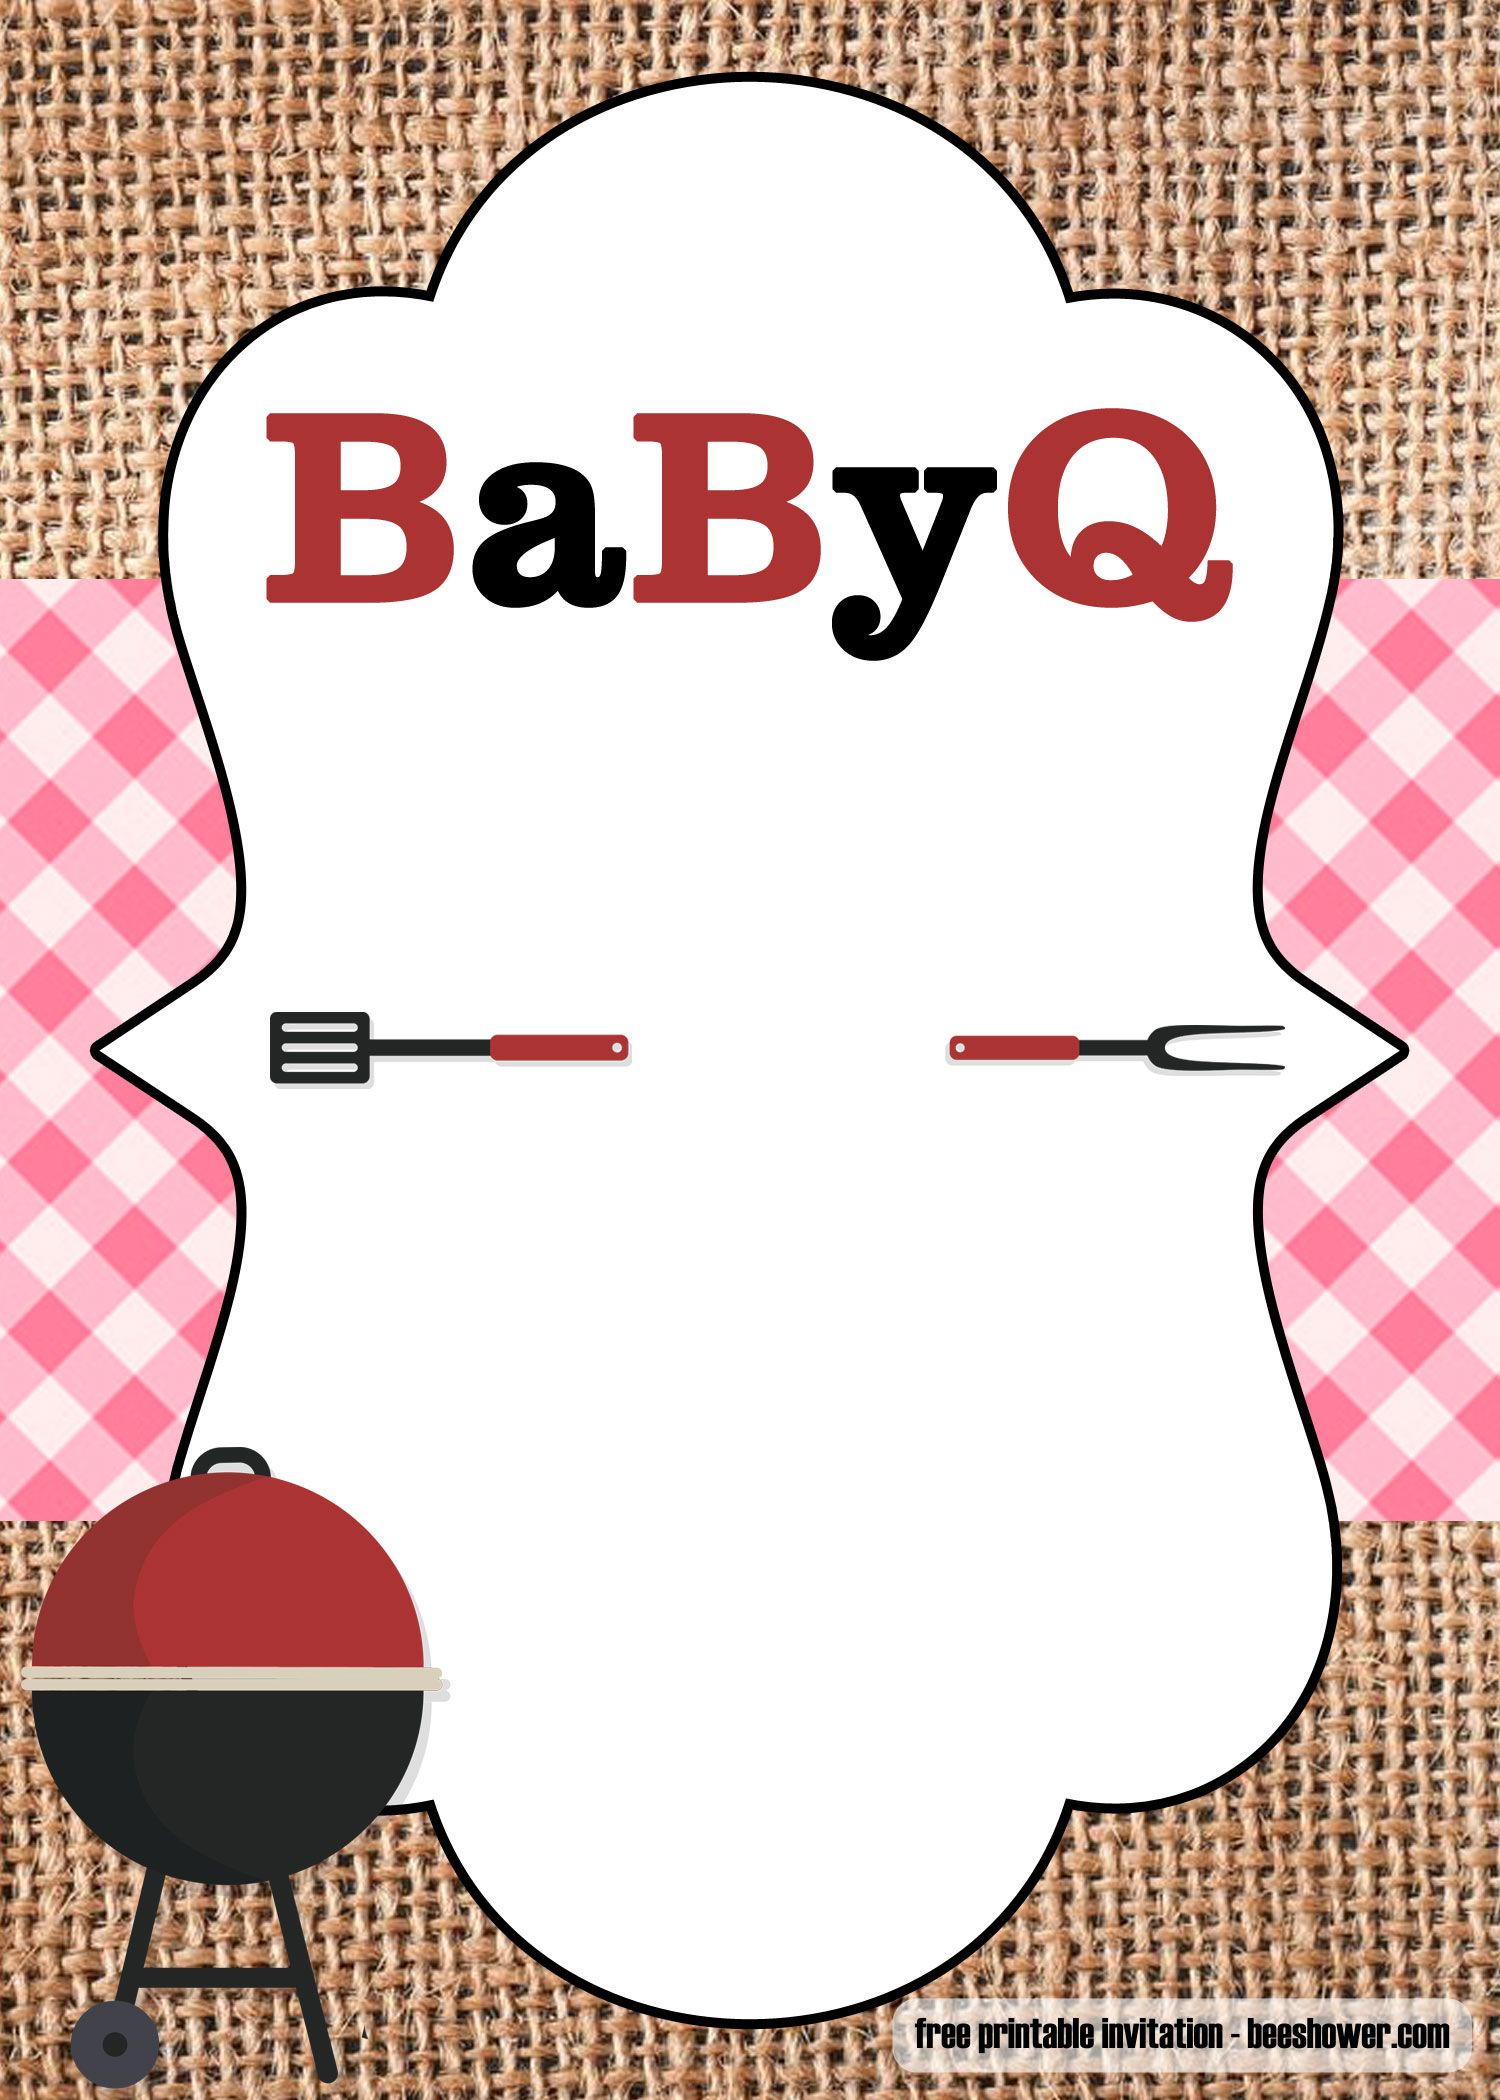 Barbecue clipart baby shower, Barbecue baby shower.